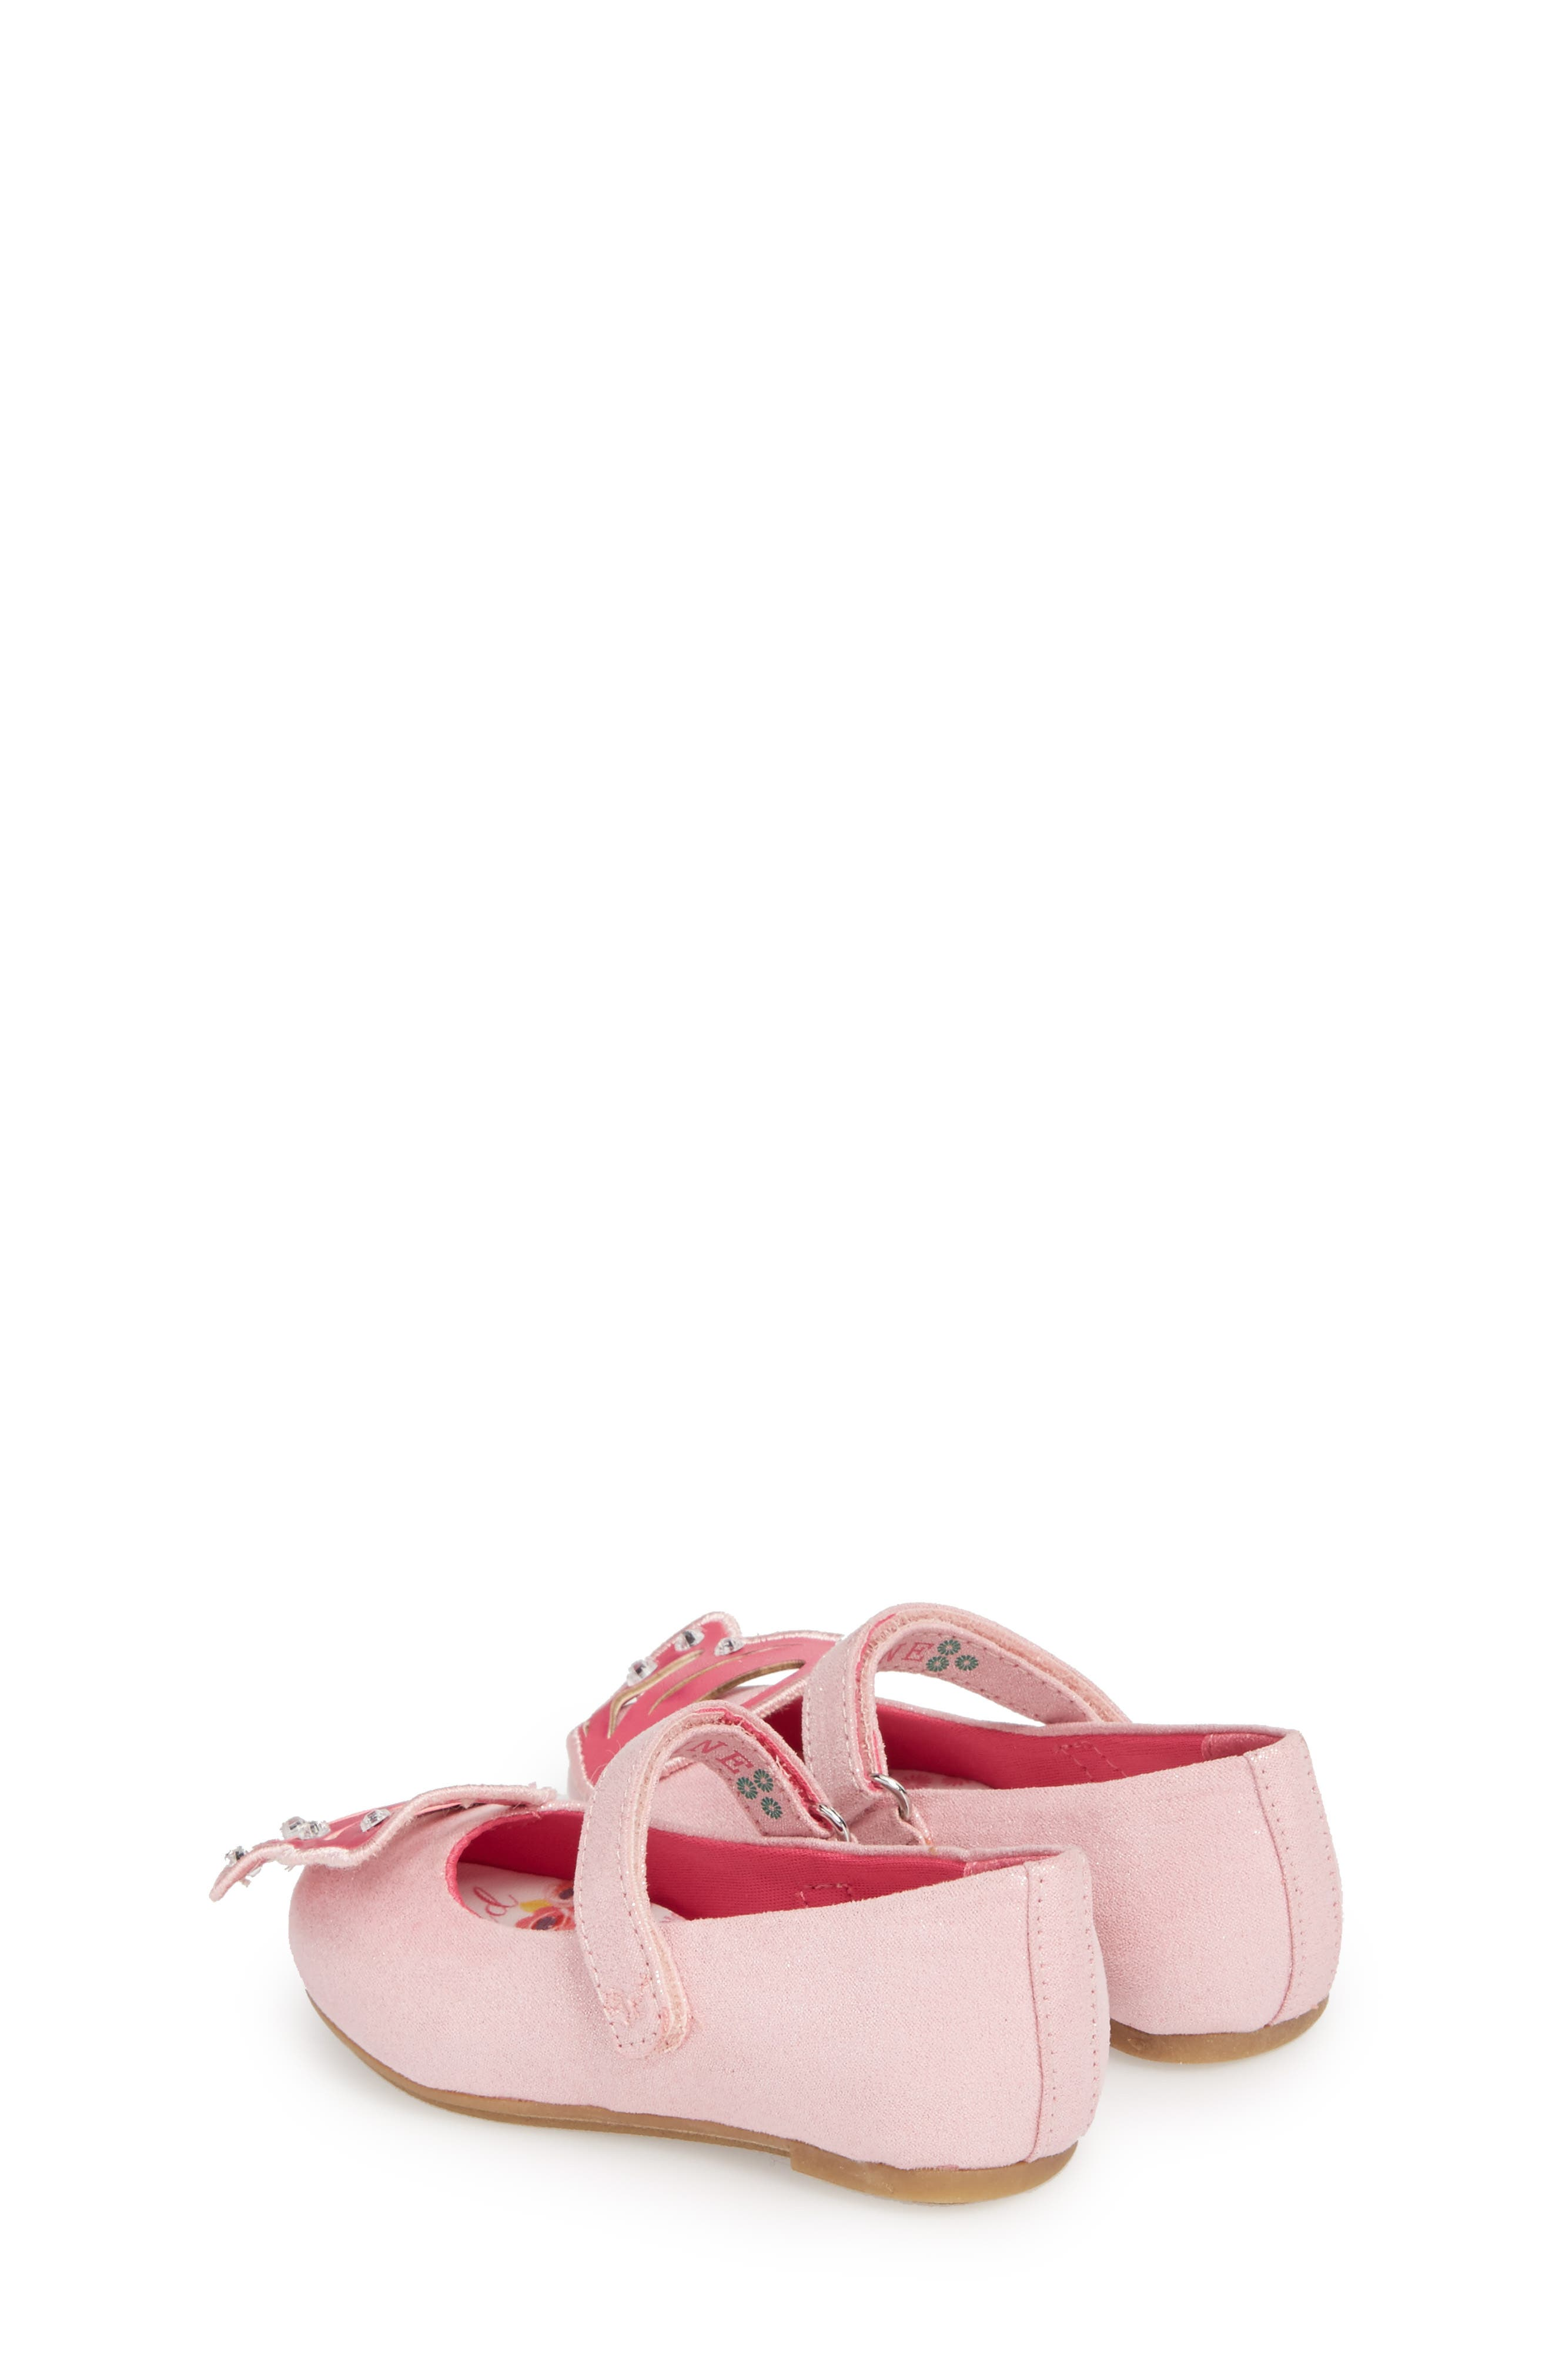 WELLIEWISHERS FROM AMERICAN GIRL,                             Flutter Wings Embellished Ballet Flat,                             Alternate thumbnail 2, color,                             650